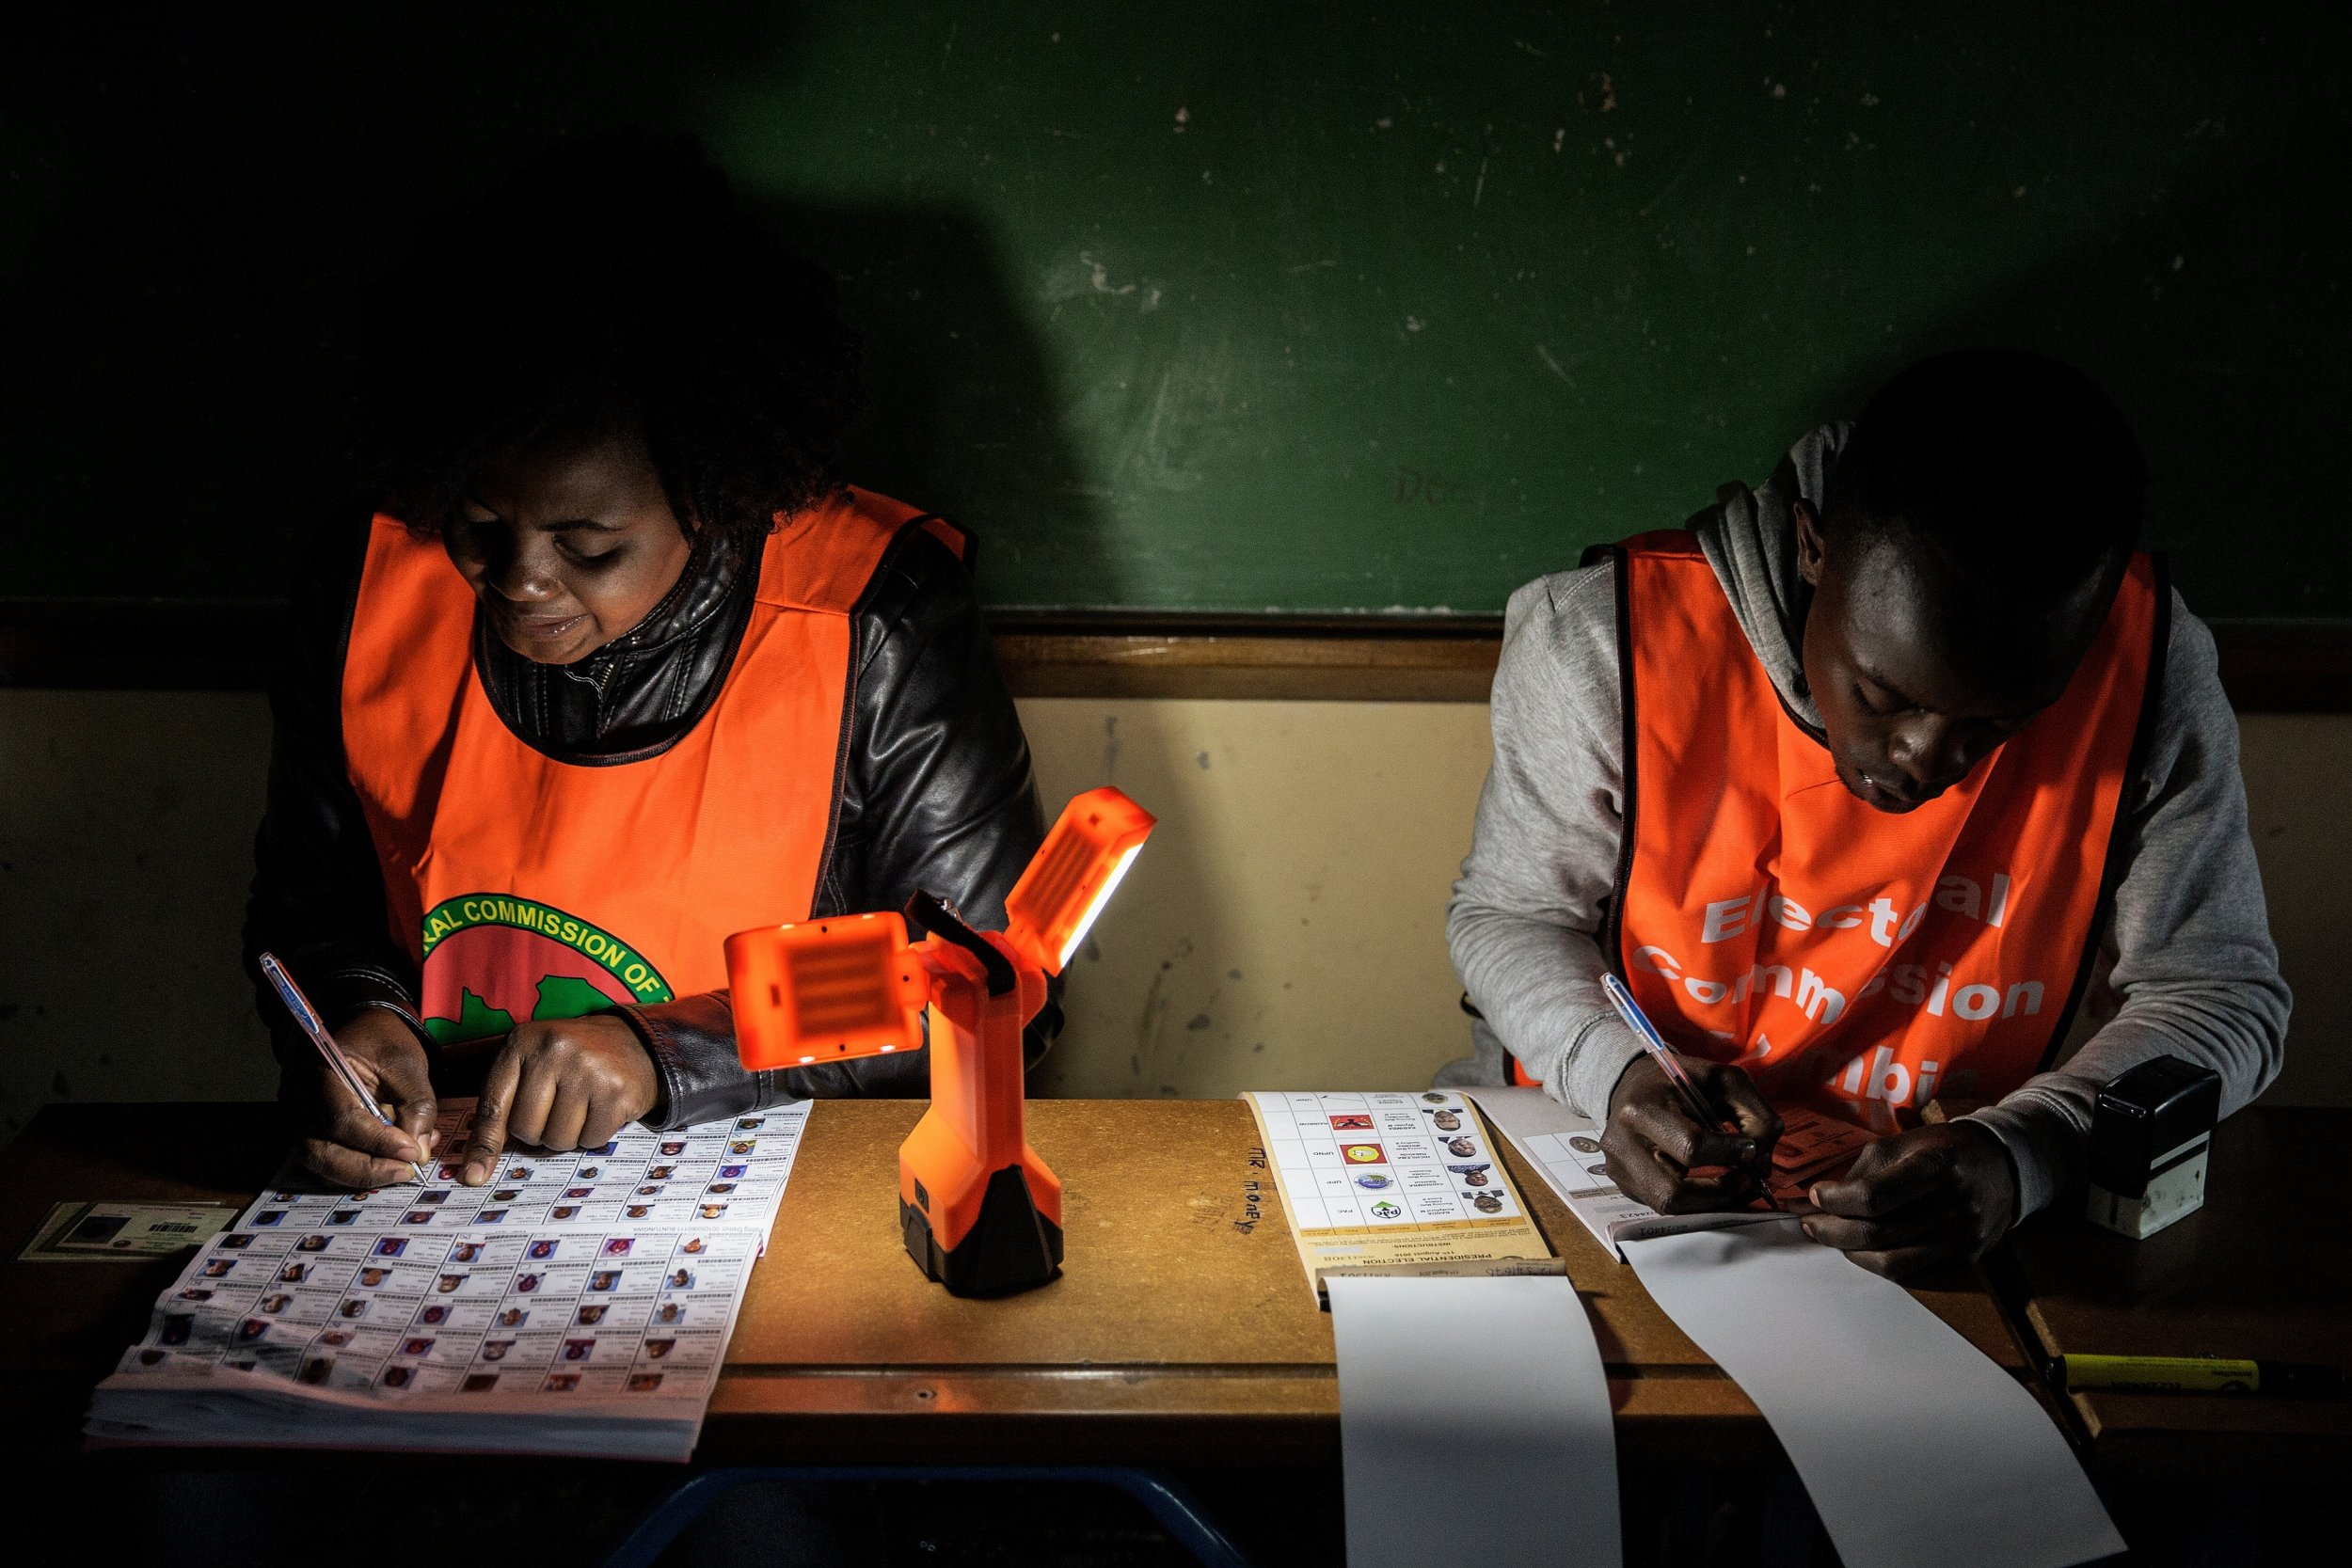 Zambia vote counters